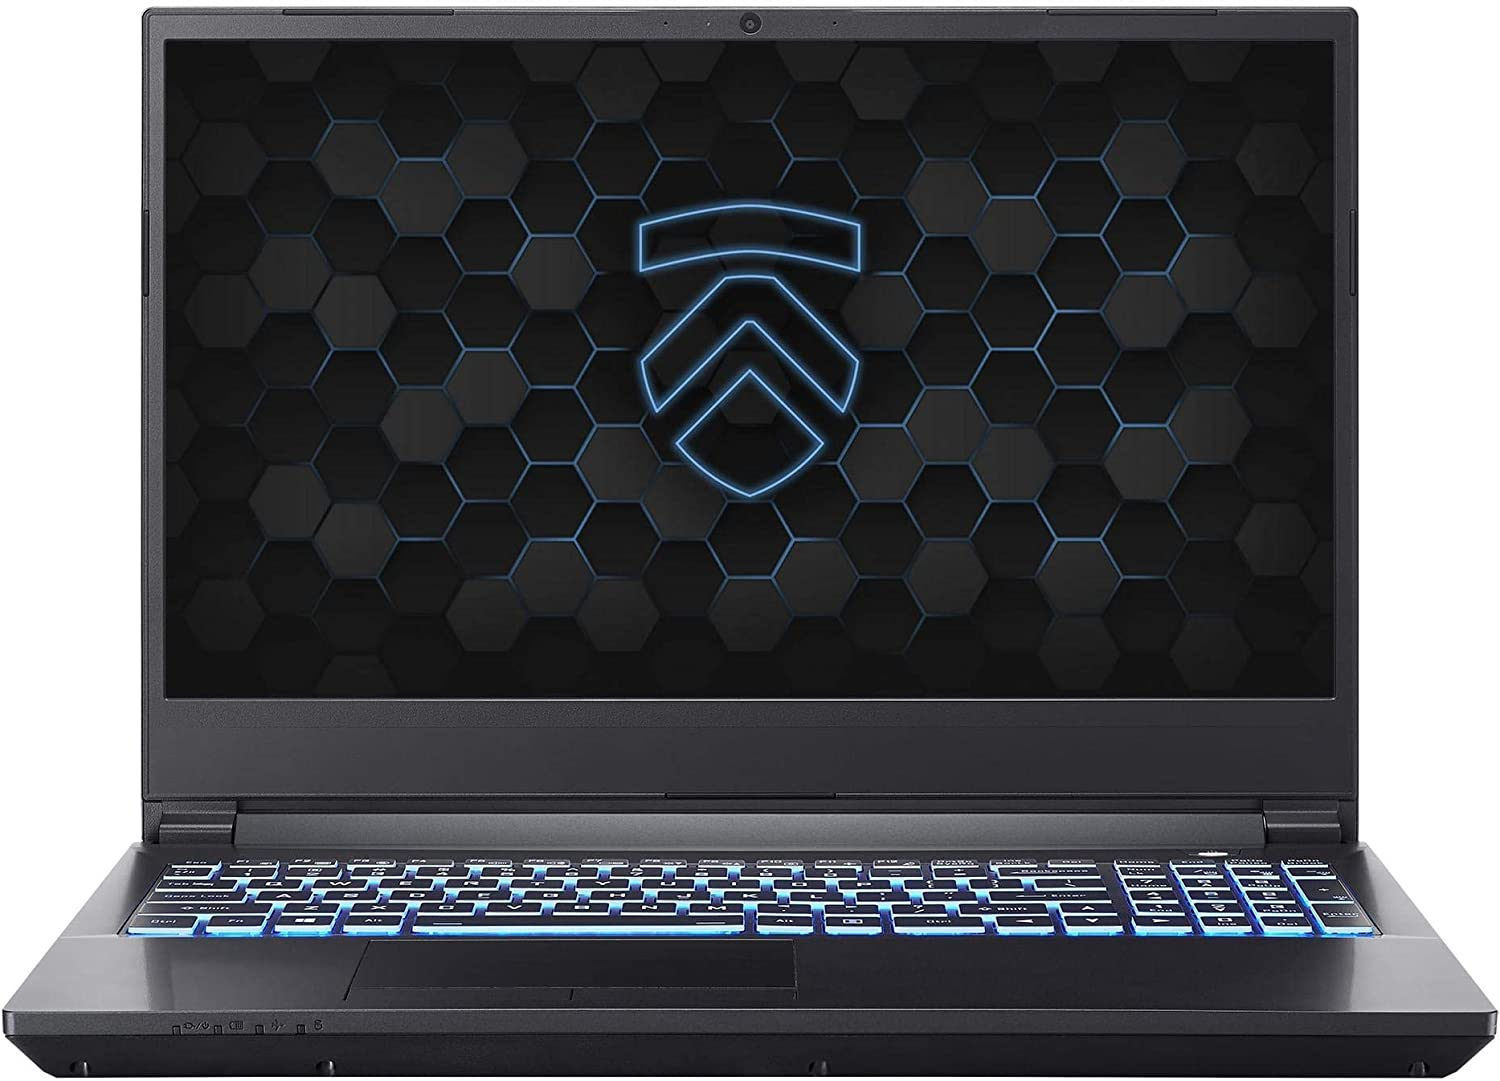 "Covert Gamer THICC-15 15.6"" Laptop: AMD Ryzen 9 3950X 16-Core Desktop Processor NVIDIA GeForce RTX 2070 144Hz FHD Windows 10 Home 1TB NVMe SSD 32GB DDR4 3200MHz RAM - Ultra Performance Notebook PC"